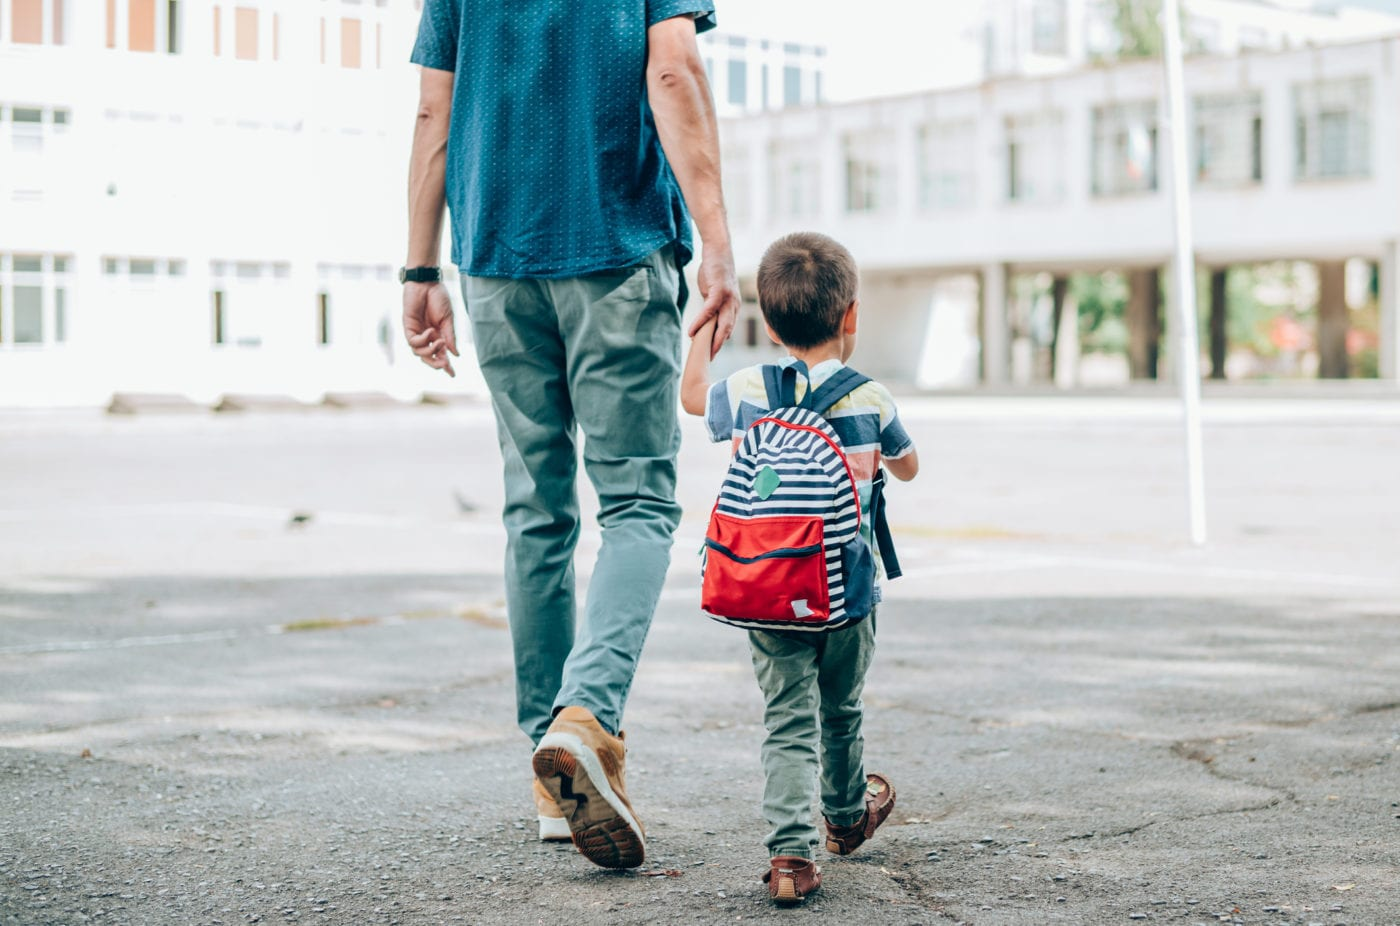 advice for noncustodial fathers